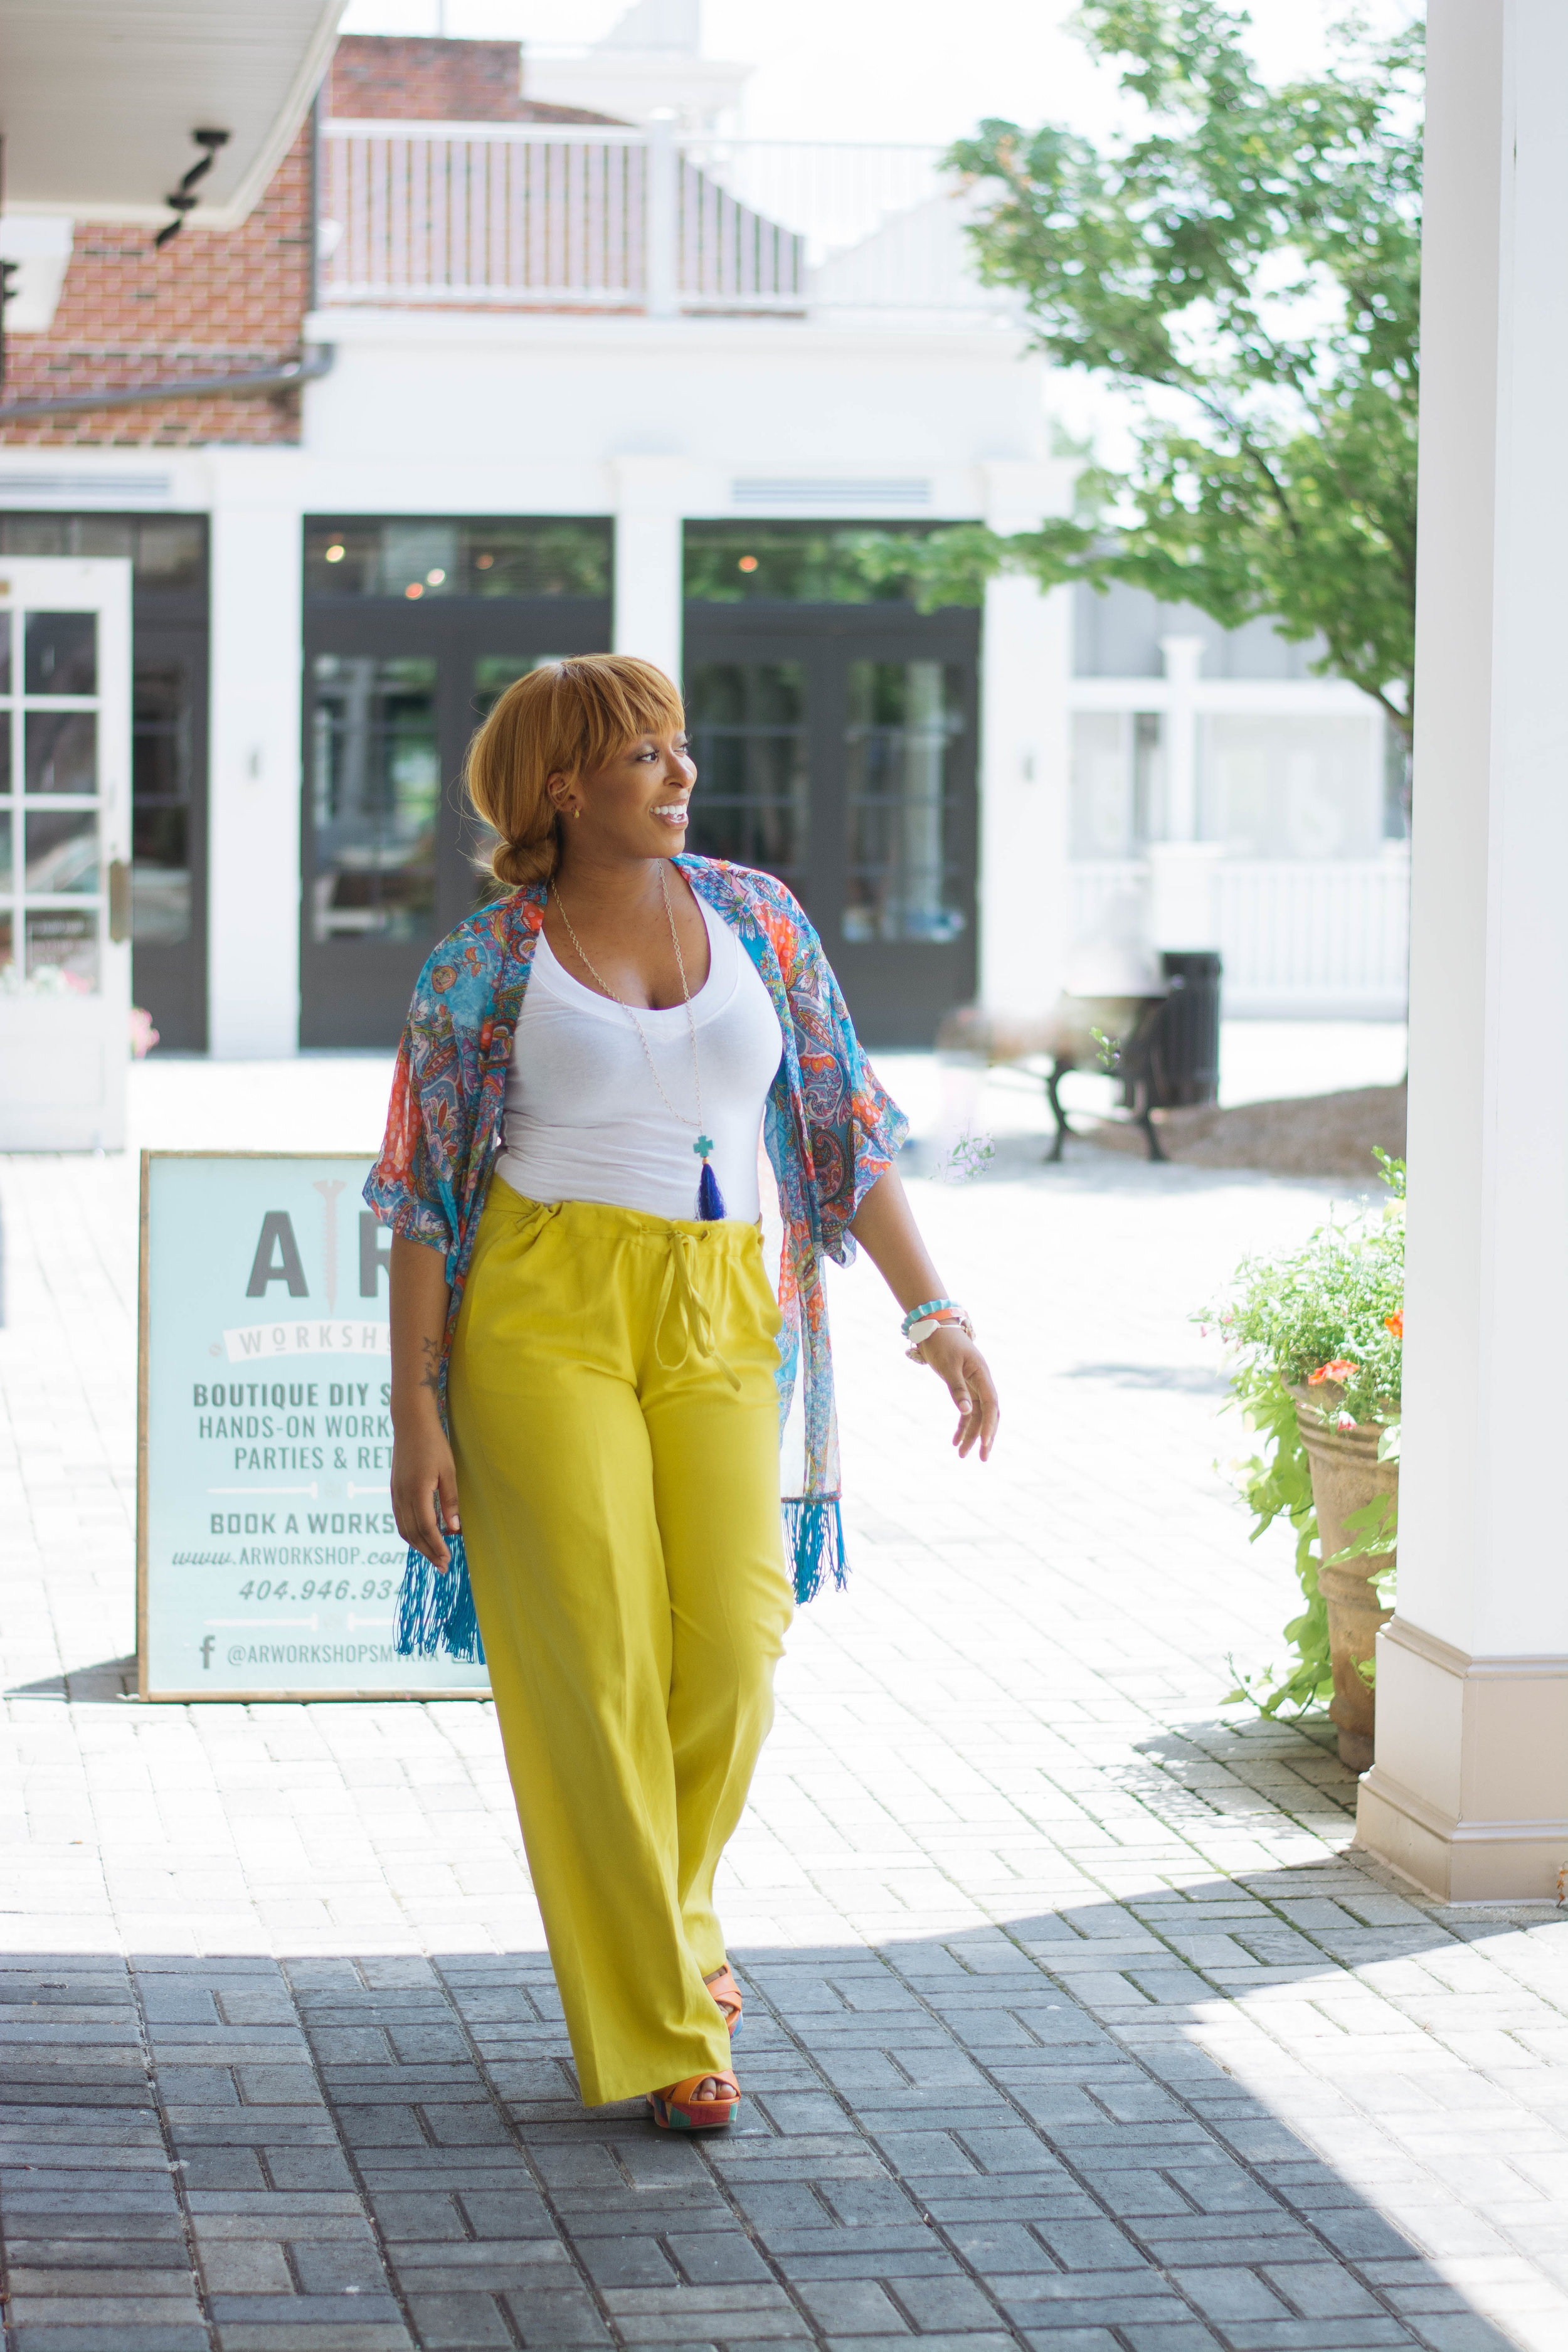 The style klazit, mommy makeover winner, atlanta personal stylist